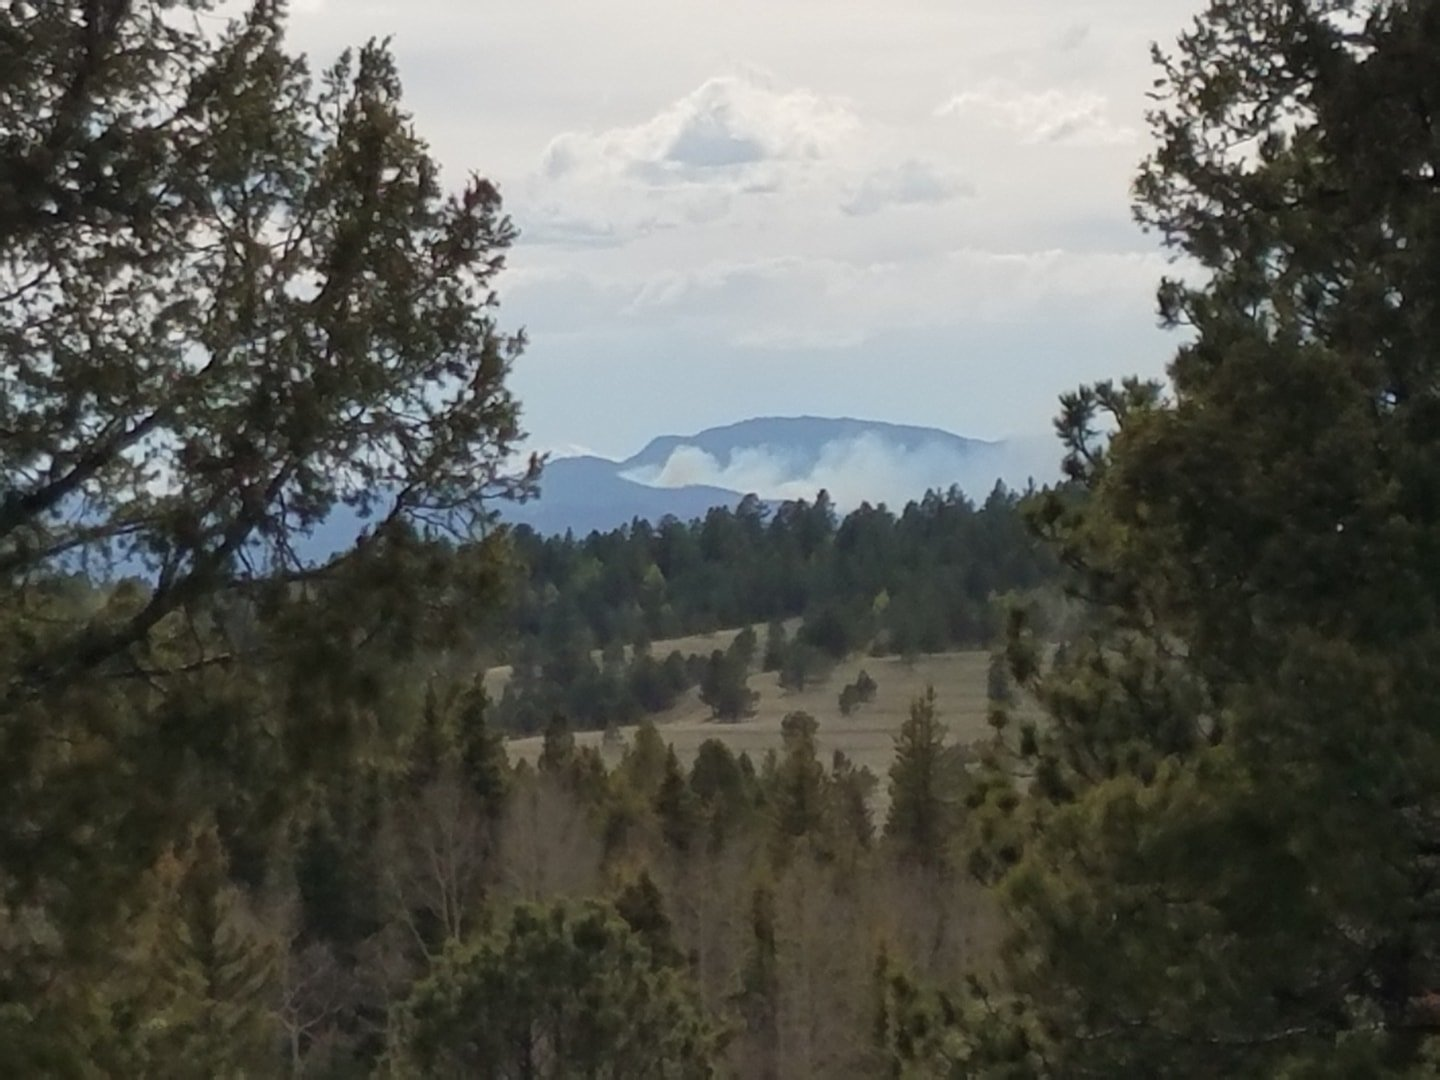 Puma Fire burning in Park County